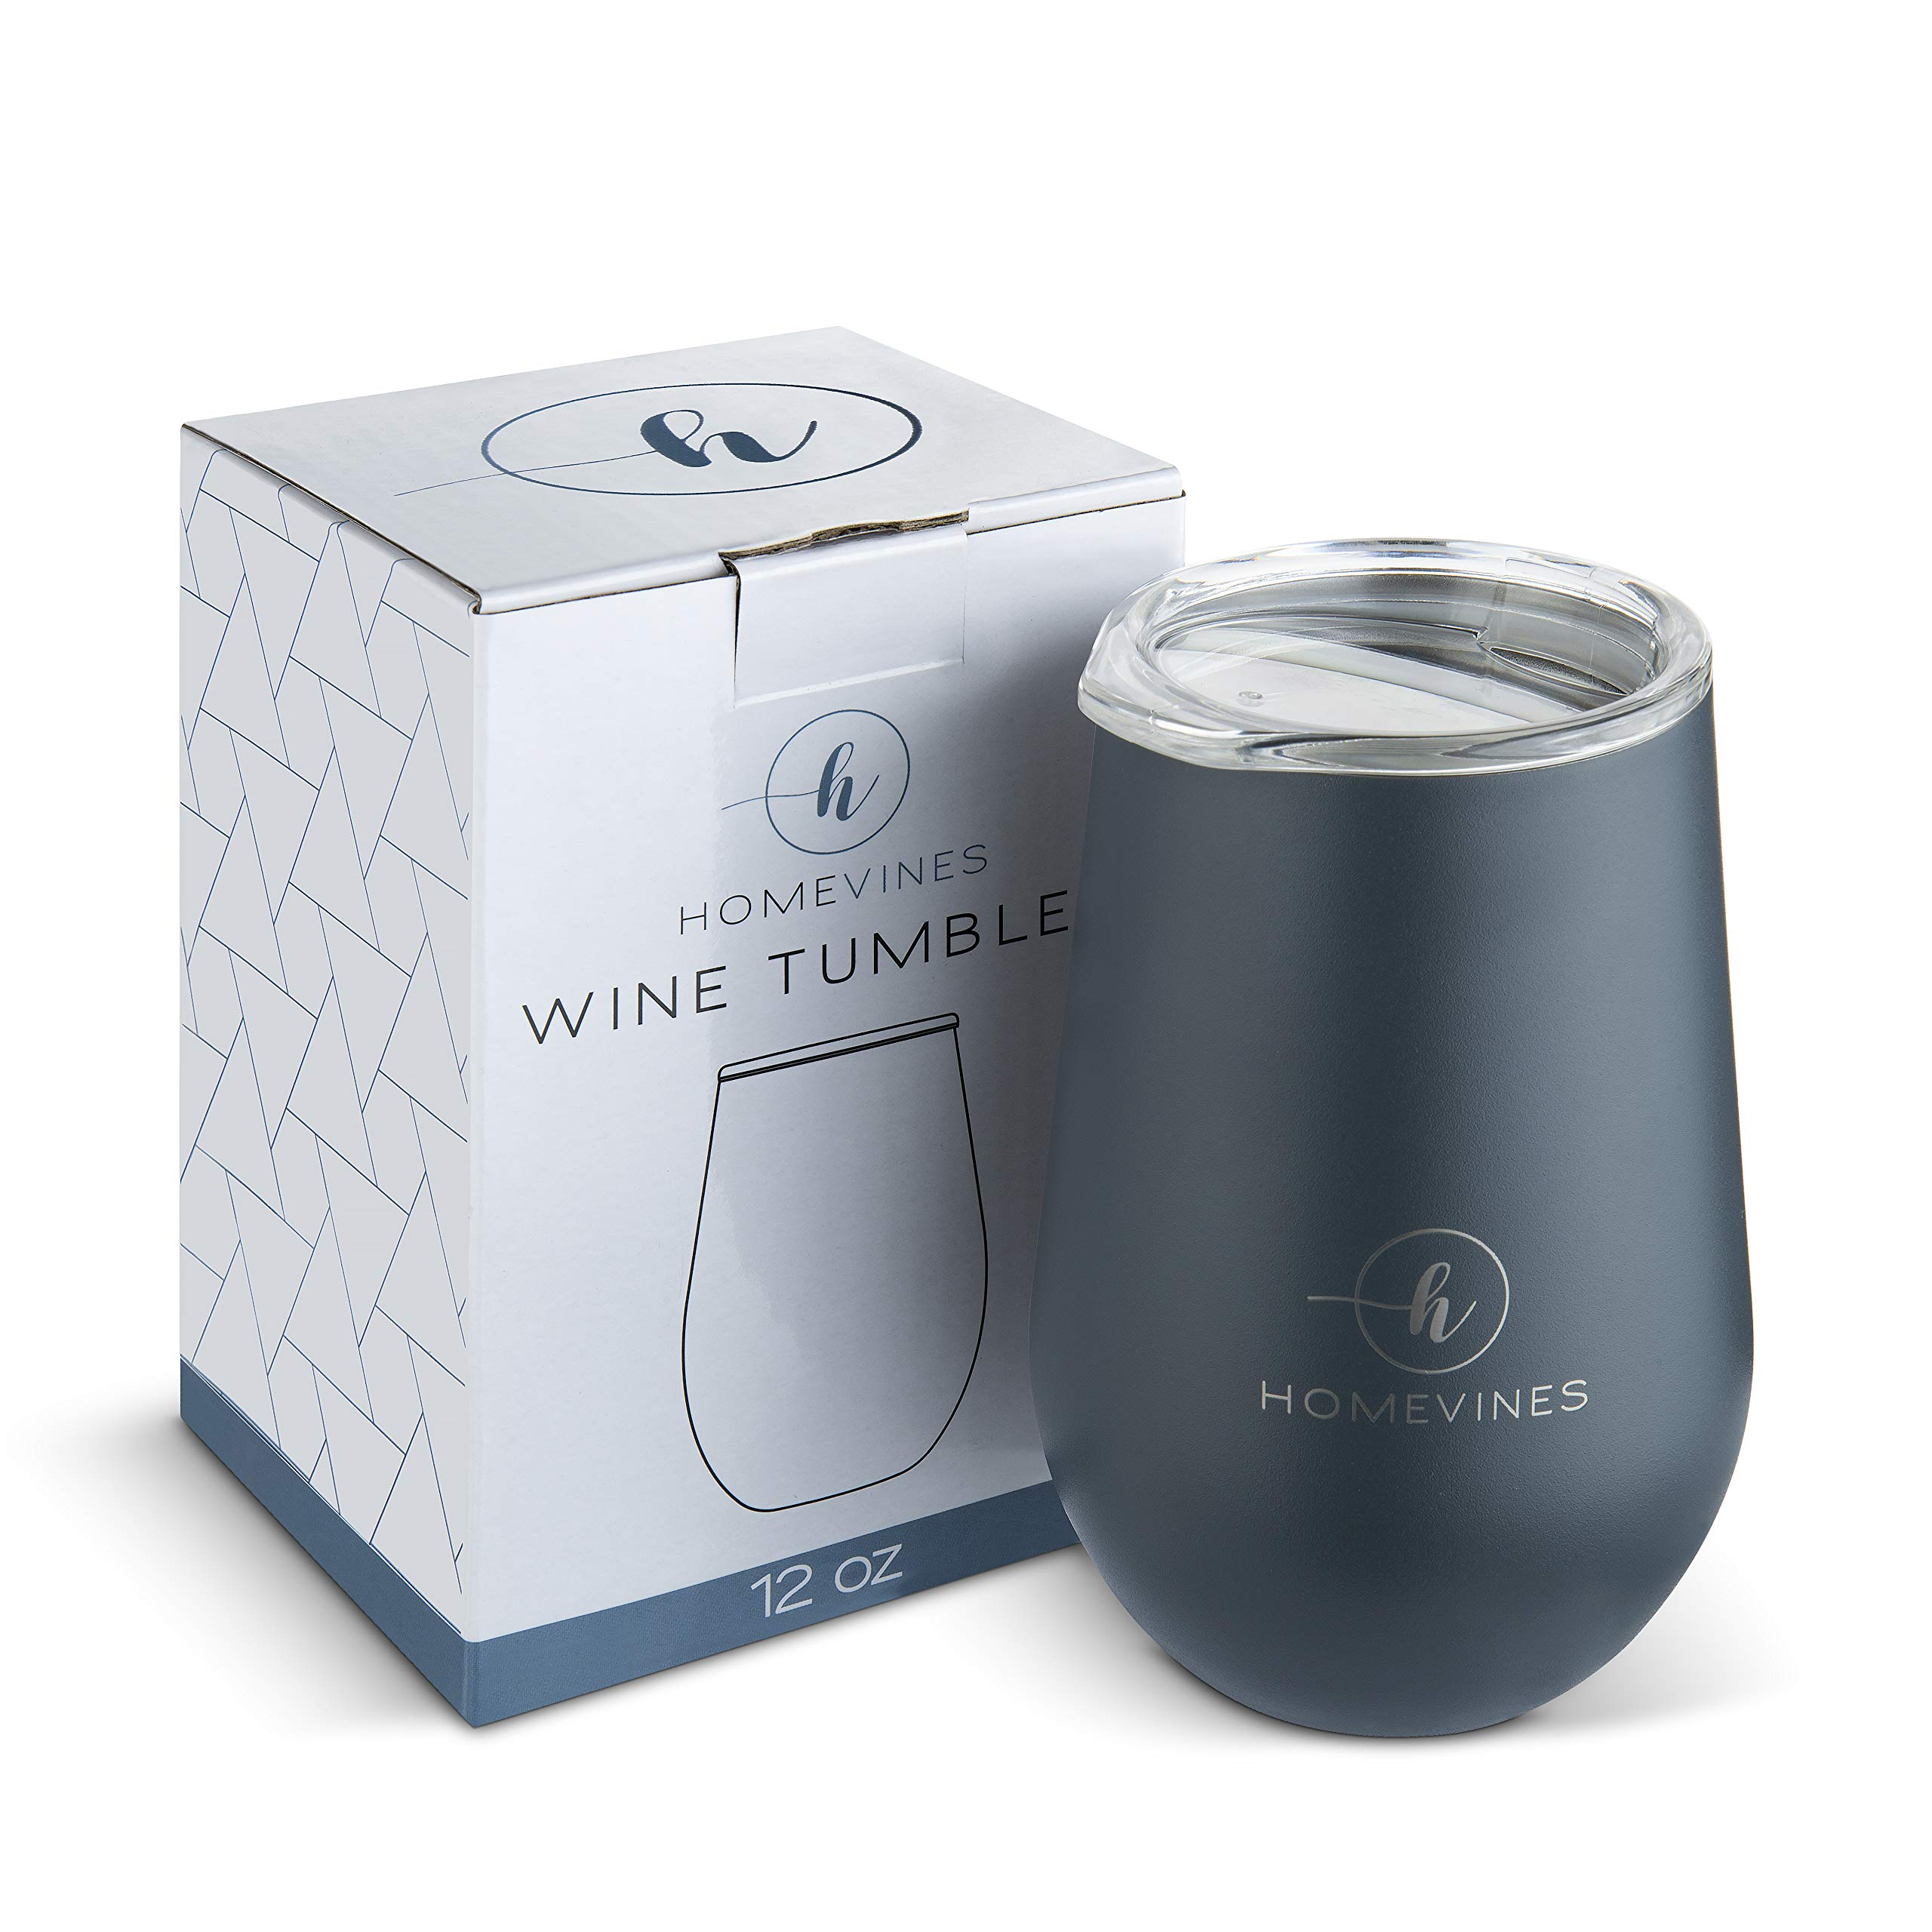 HomeVines Wine Tumbler With Lid - Insulated 12 oz Stainless Steel Wine Tumblers & Portable Stemless Glasses (Travel Adult Cups Perfect For Wine, Coffee, Drinks, Cocktails, Tea)